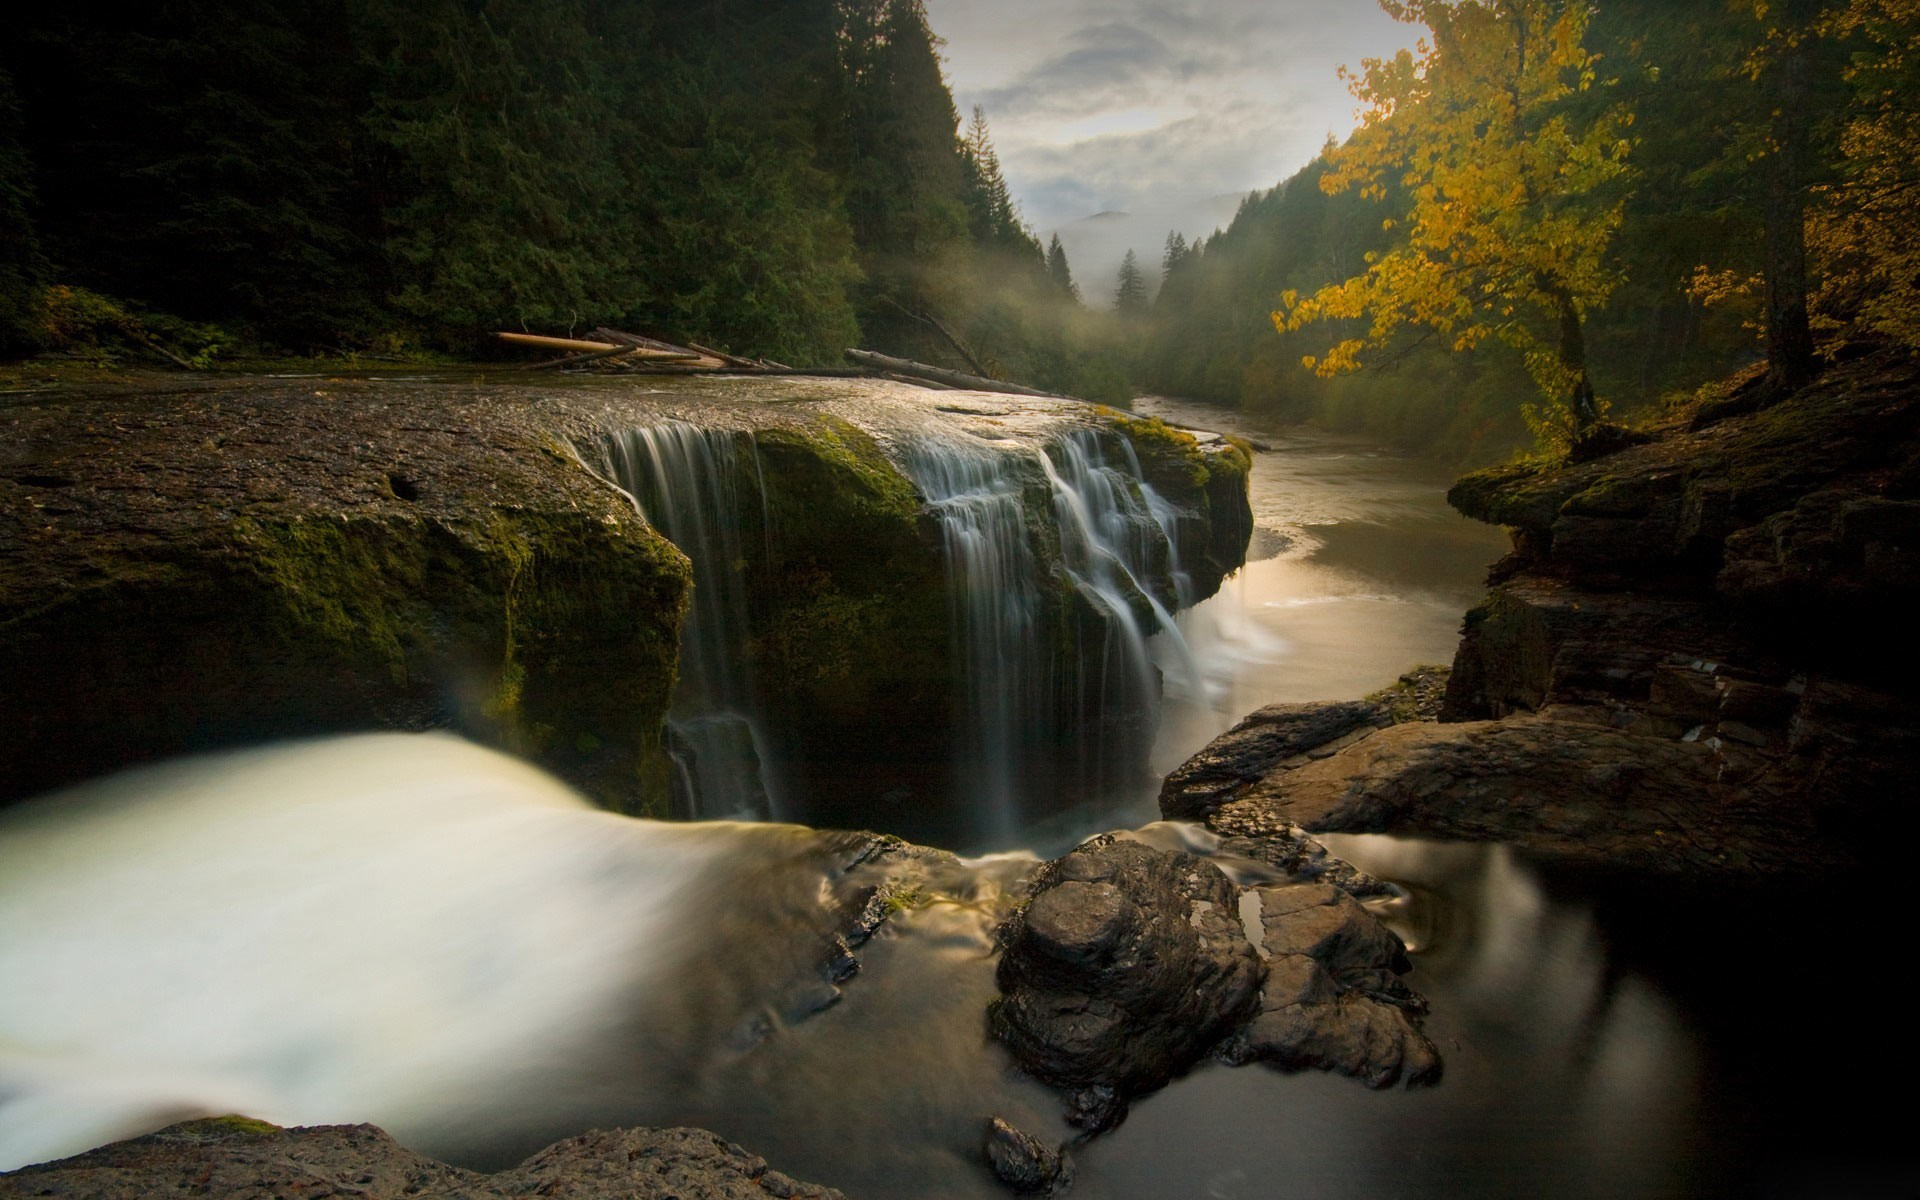 General 1920x1200 nature landscape water trees Washington state river waterfall stream USA rock forest fall long exposure